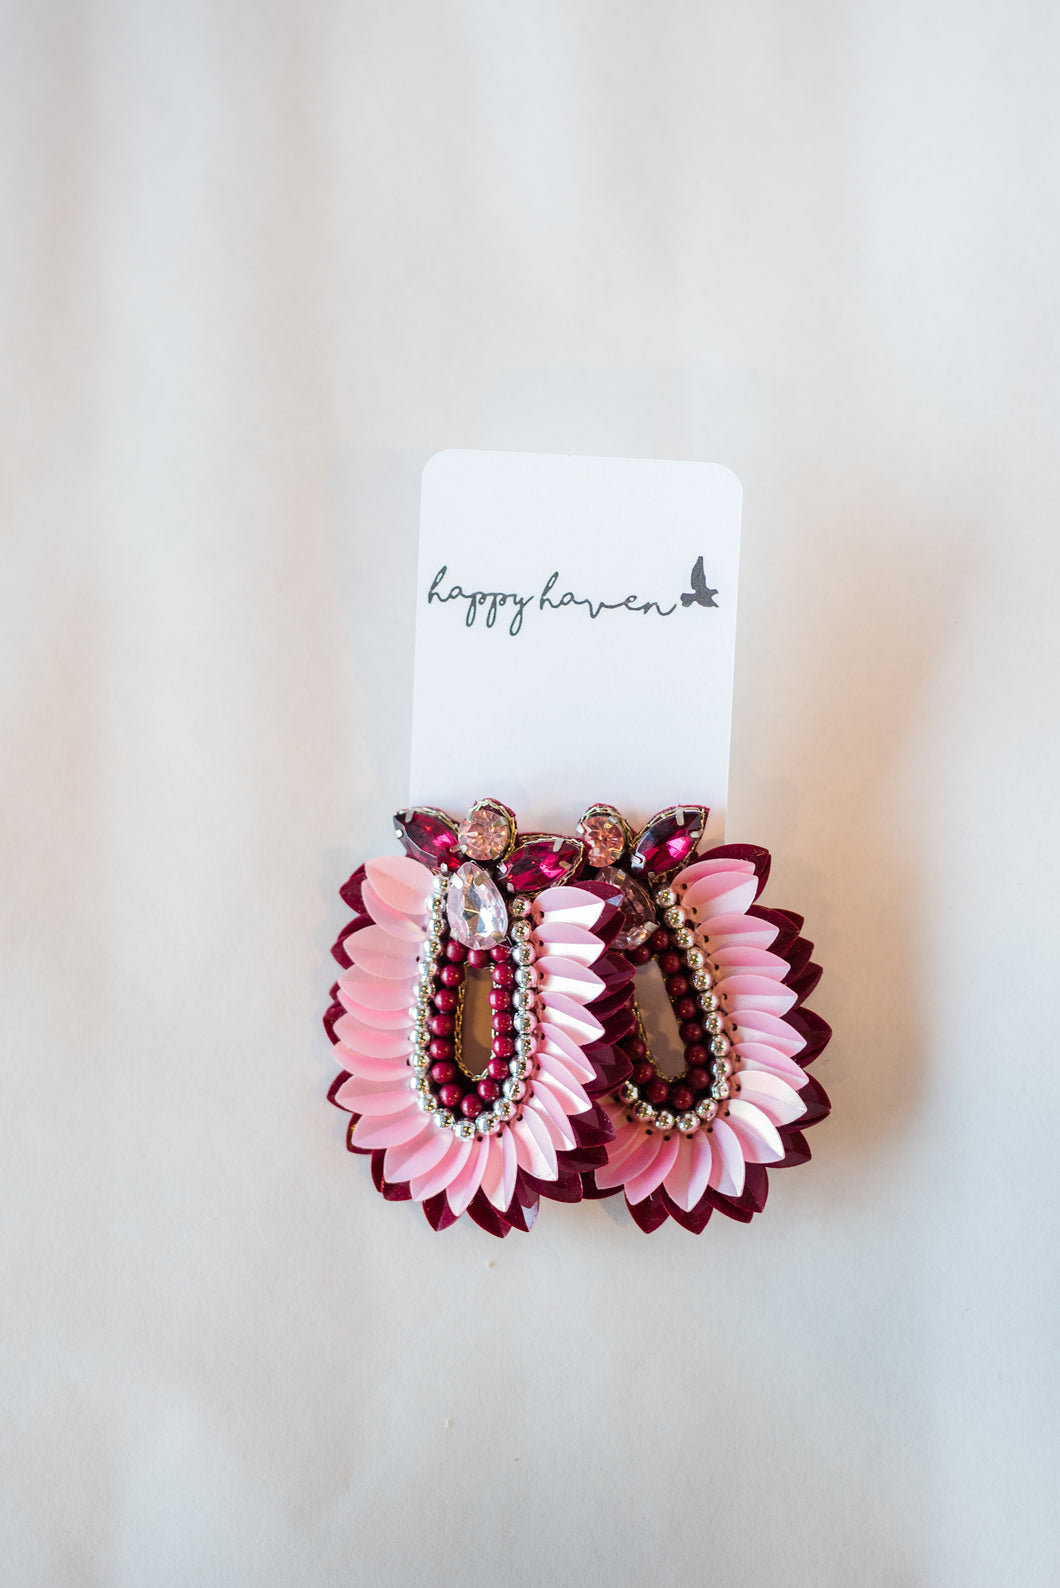 Light and dark pink jewel earrings